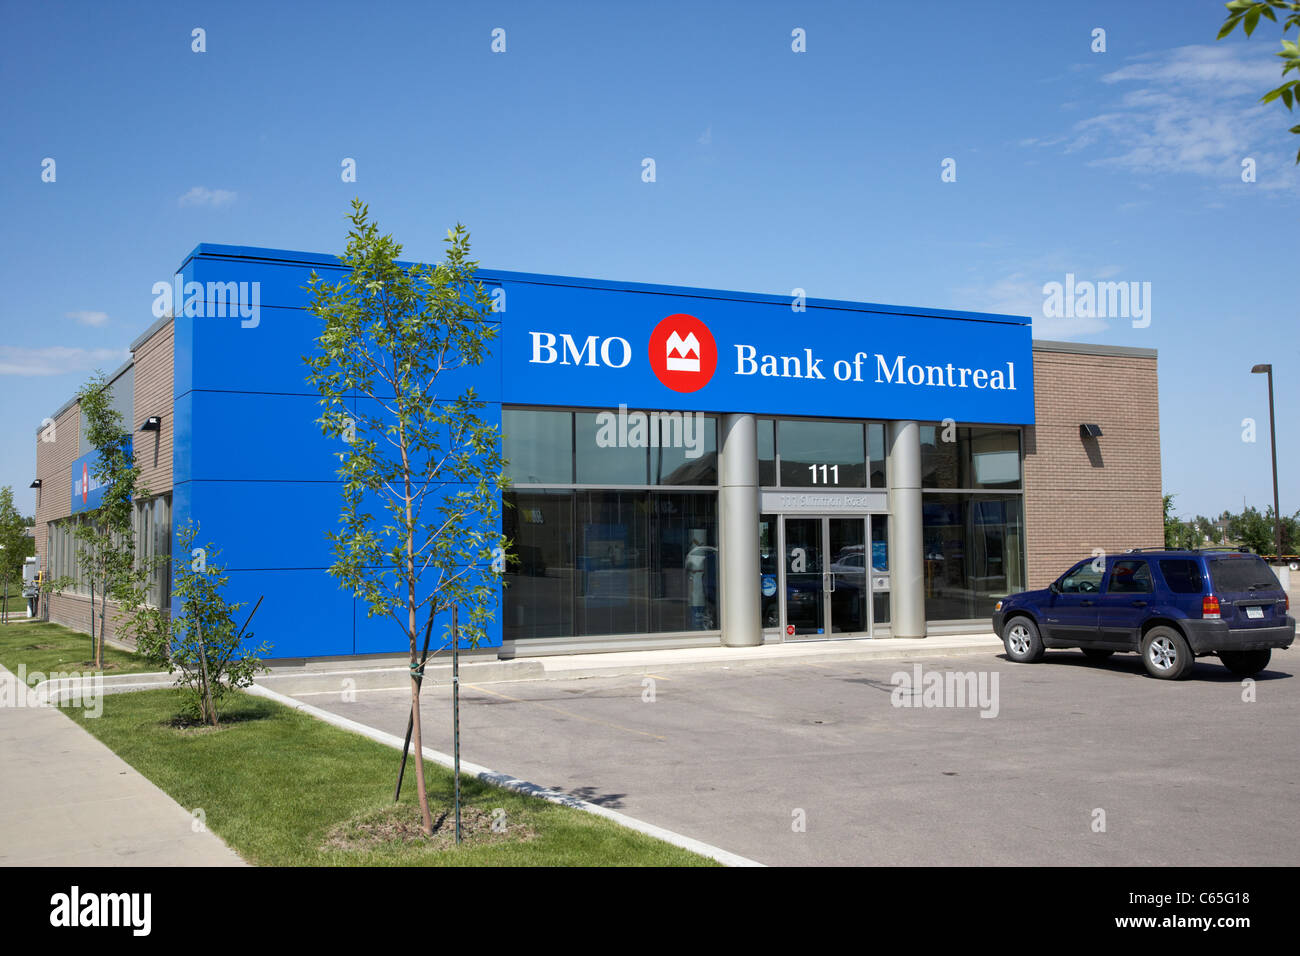 bank of montreal branch in new residential area Saskatoon Saskatchewan Canada - Stock Image